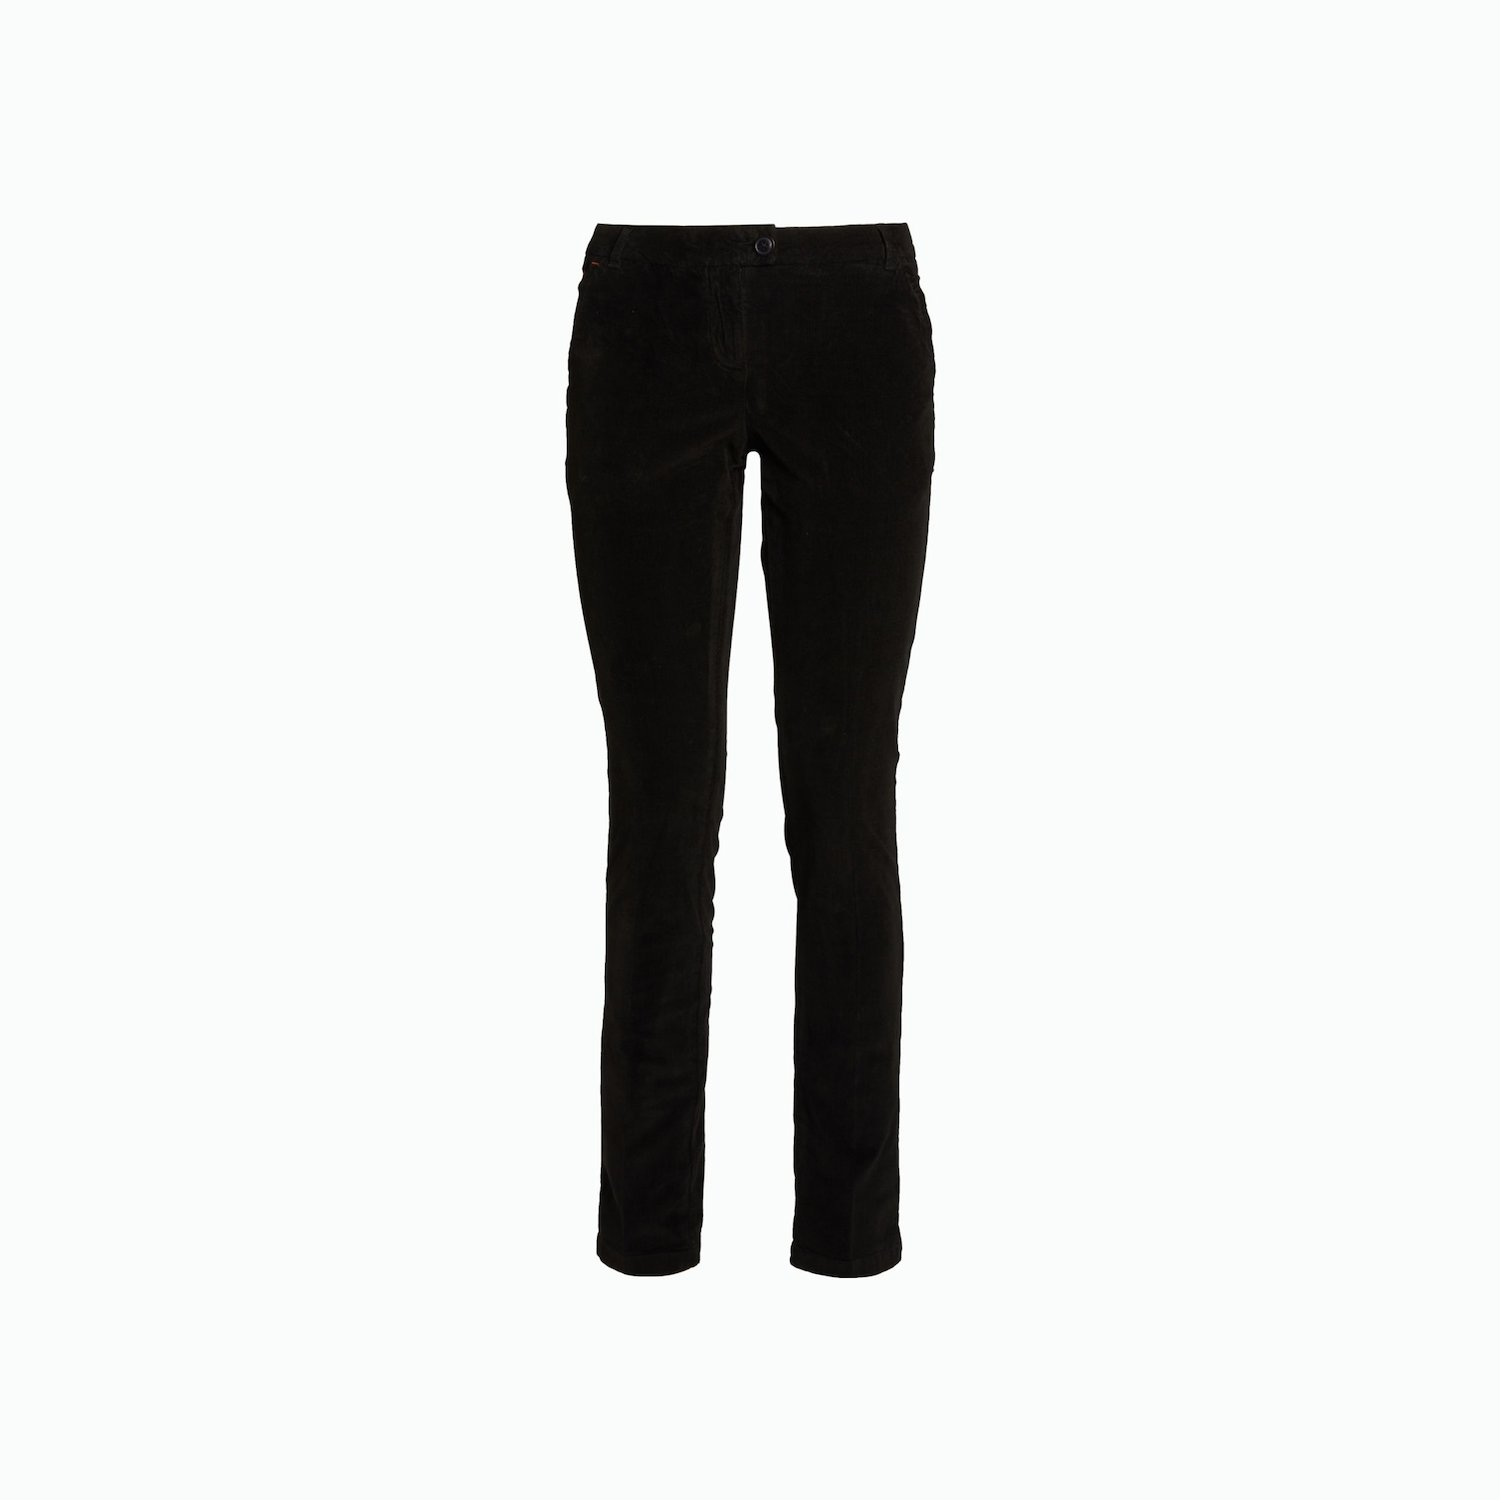 B36 Trousers - Black